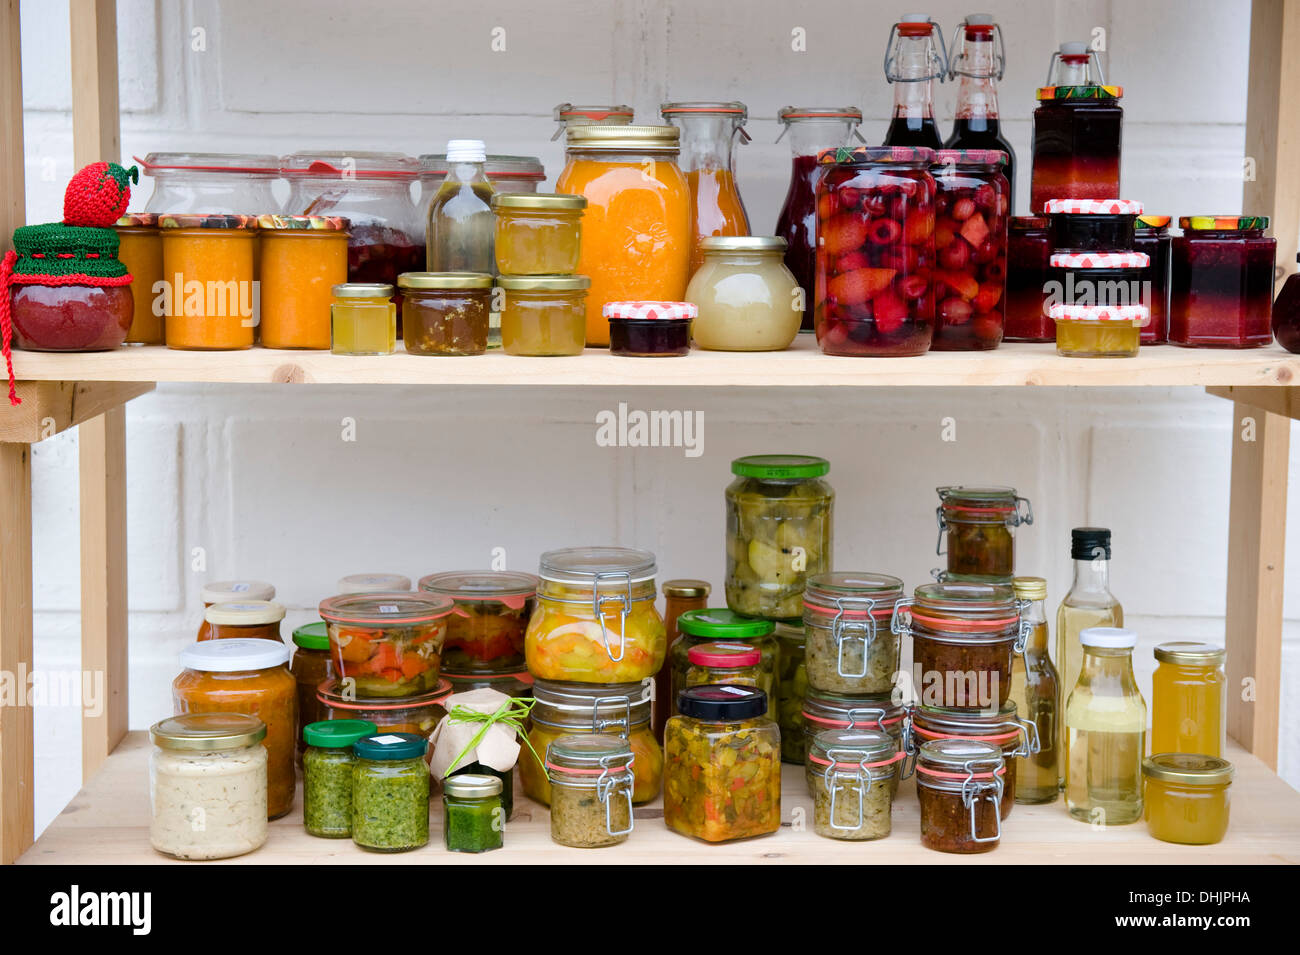 food larder with shelves of homemade products homemade